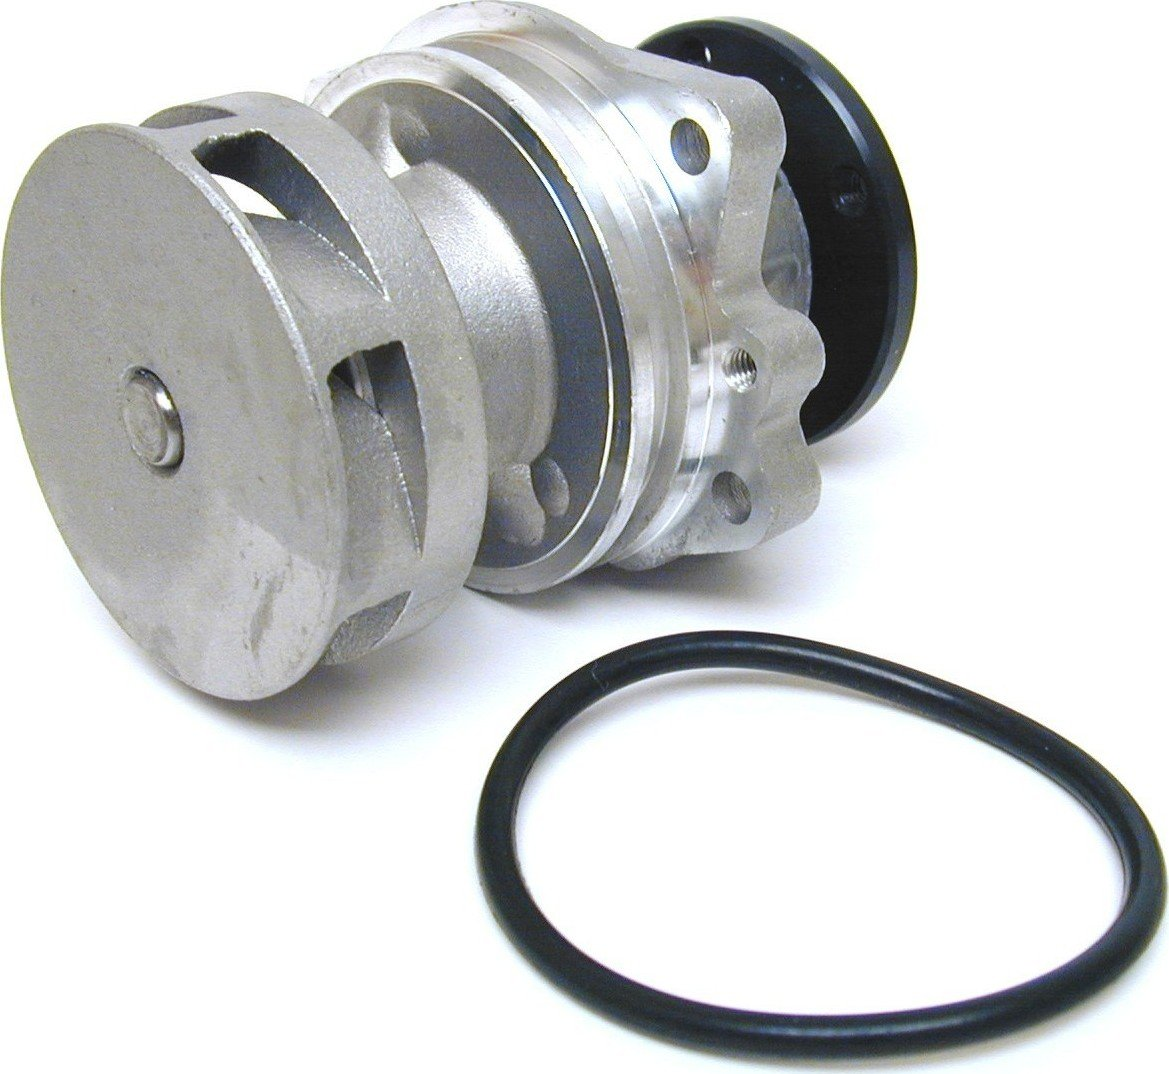 URO Parts 11 51 7 527 799 Water Pump with Metal Impeller